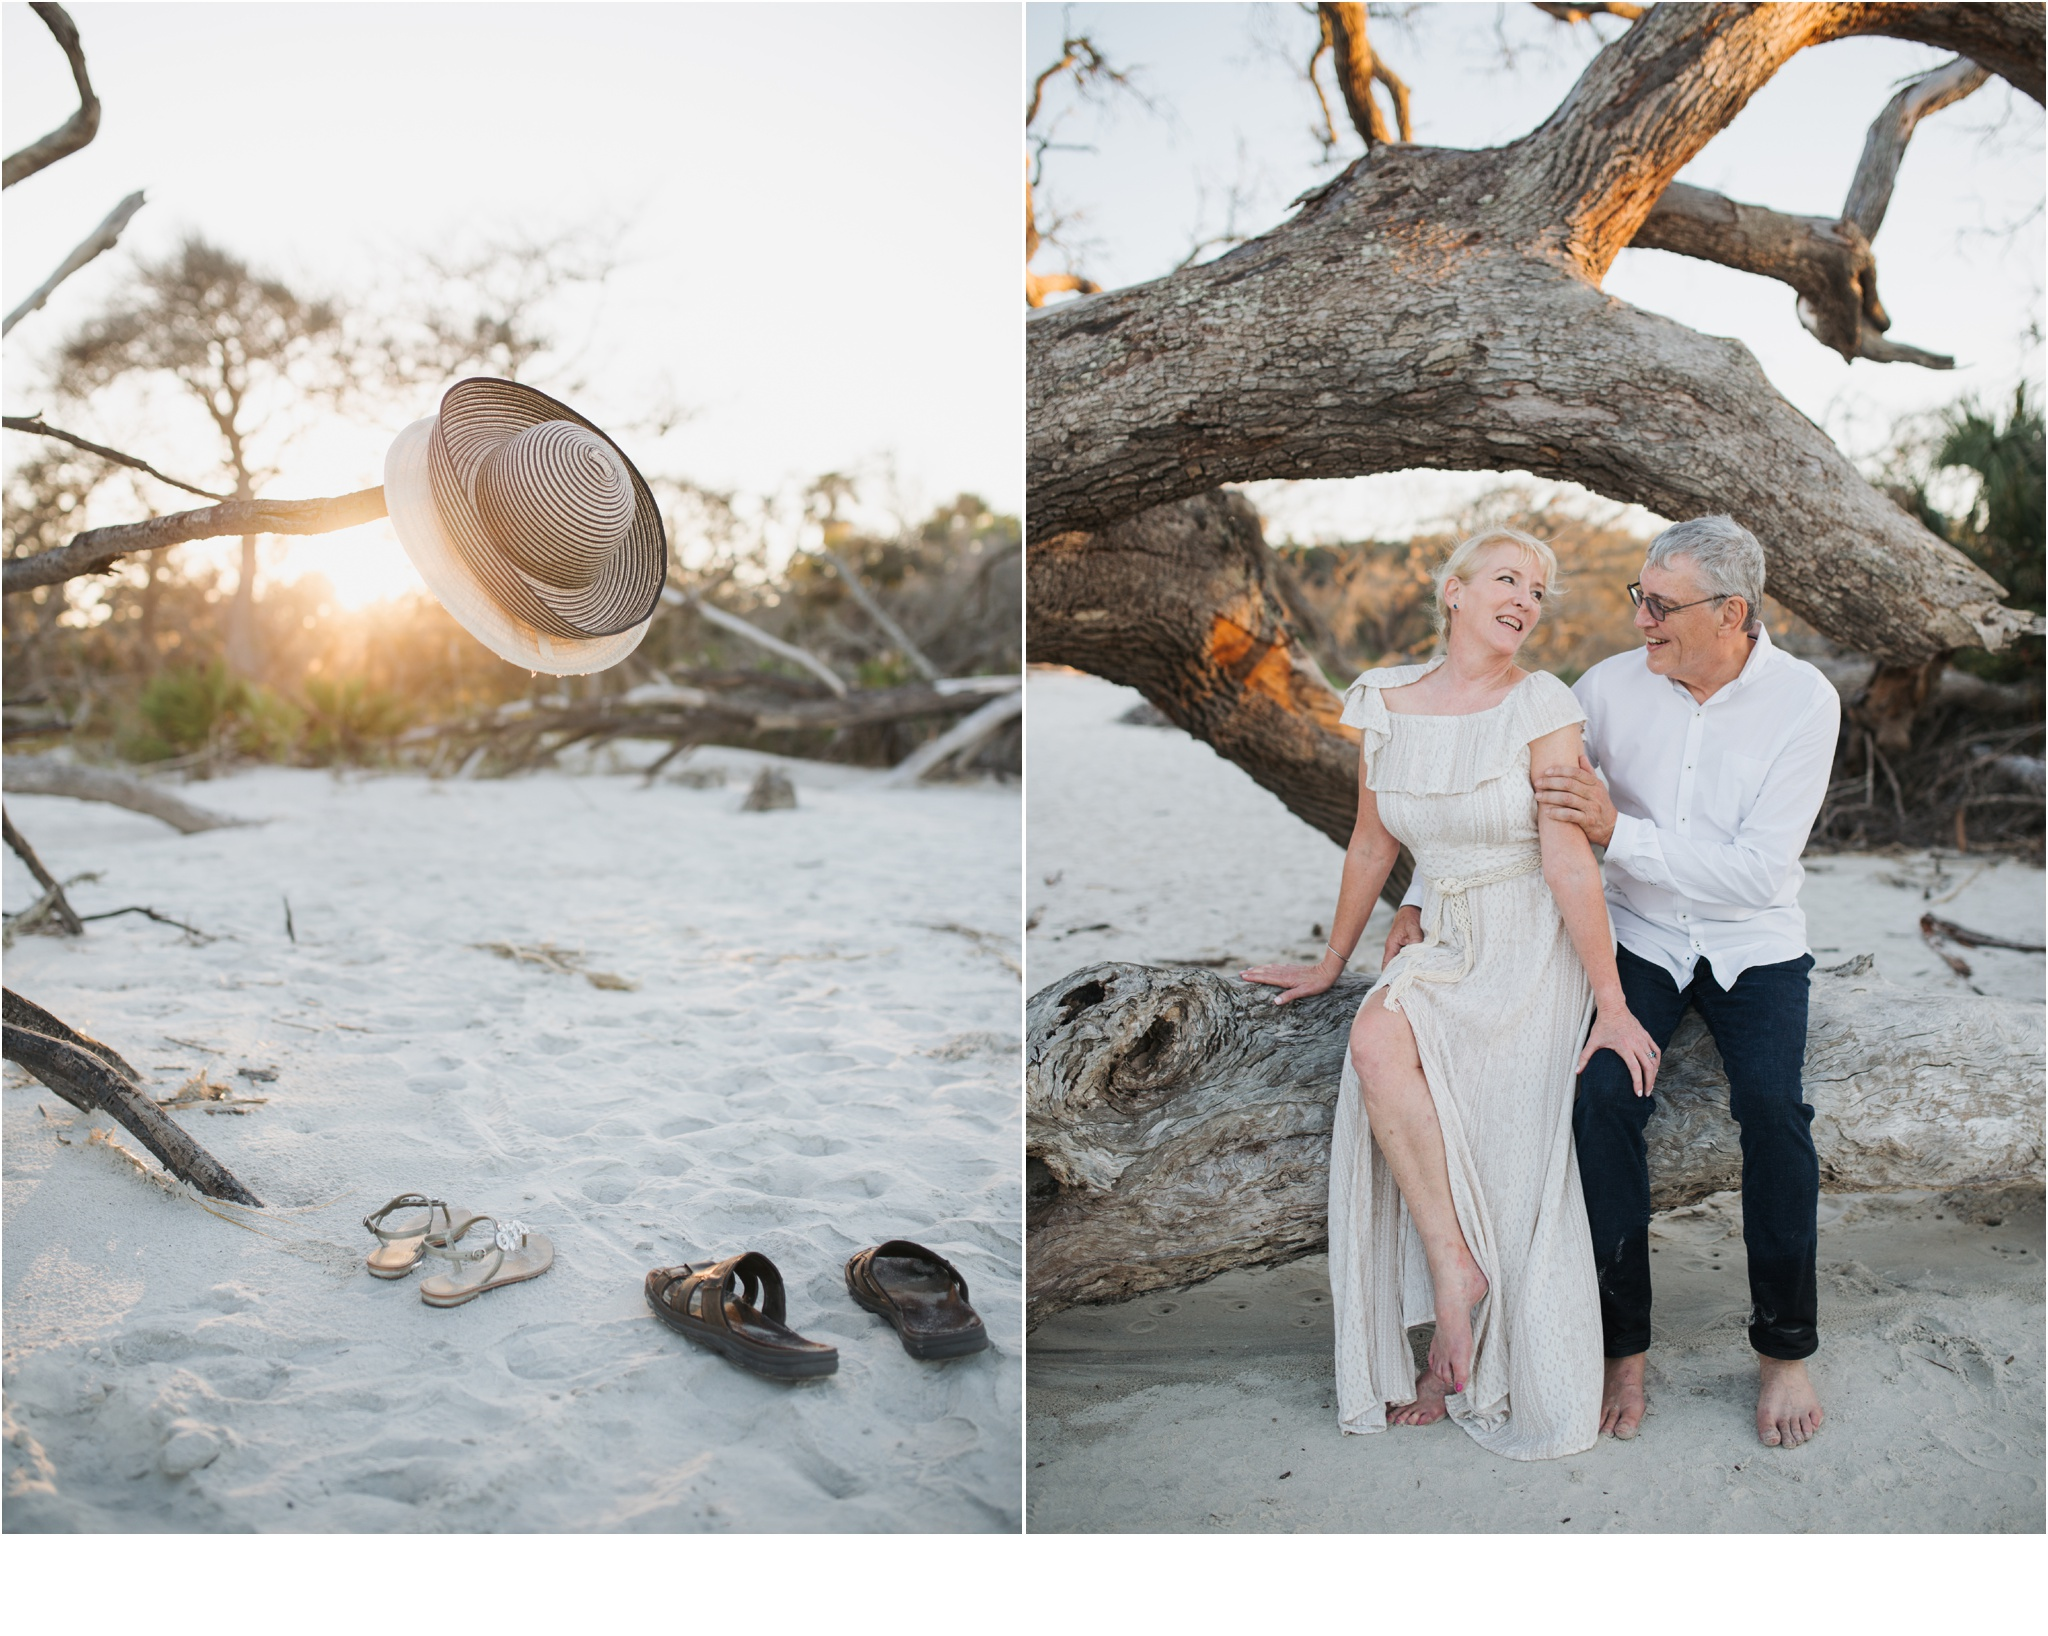 Rainey_Gregg_Photography_St._Simons_Island_Georgia_California_Wedding_Portrait_Photography_1607.jpg